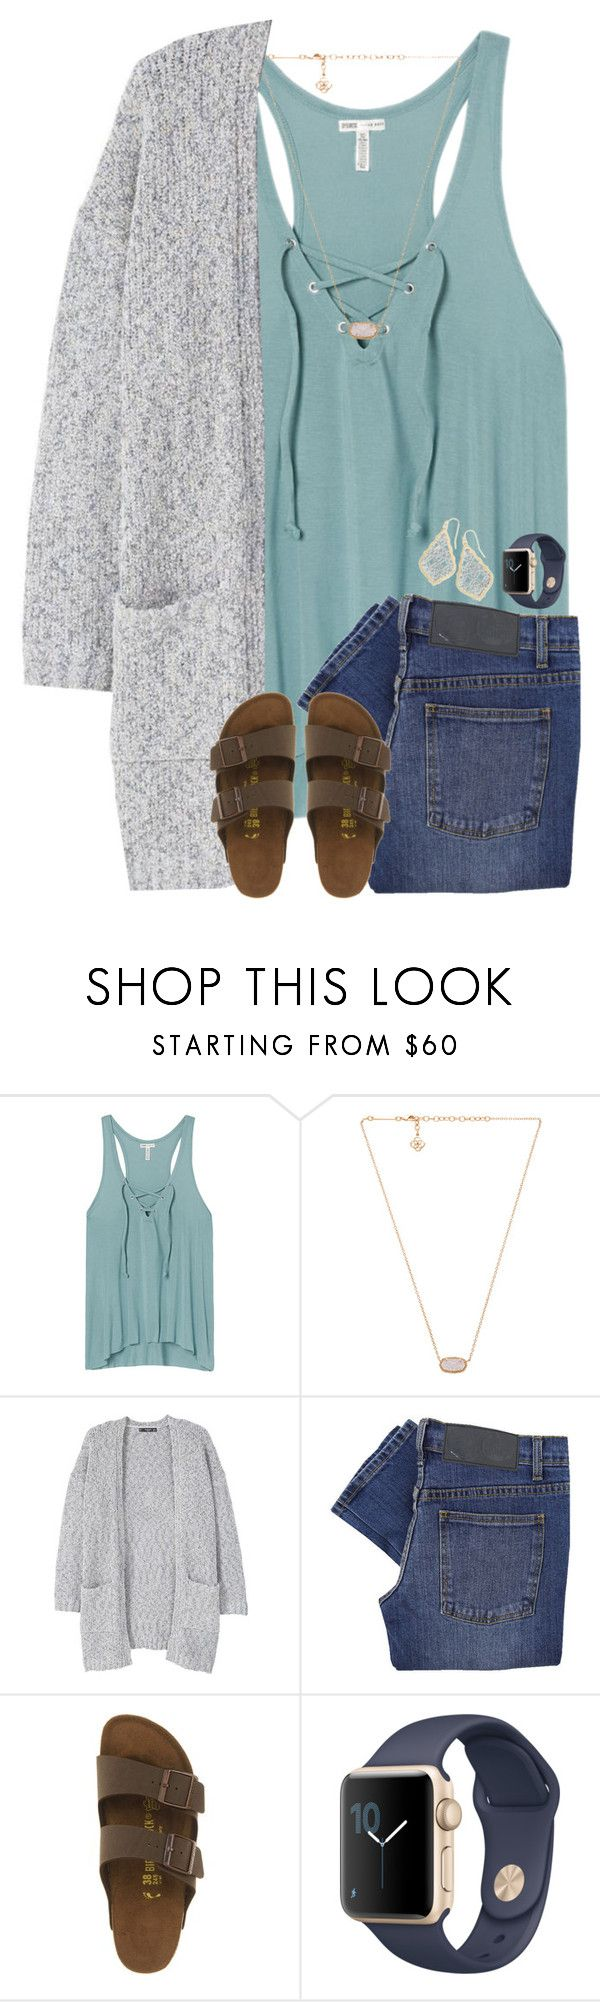 """""""Fingers crossed I make it through today"""" by wildasyou ❤ liked on Polyvore featuring Victoria's Secret, Kendra Scott, MANGO, Cheap Monday and Birkenstock"""